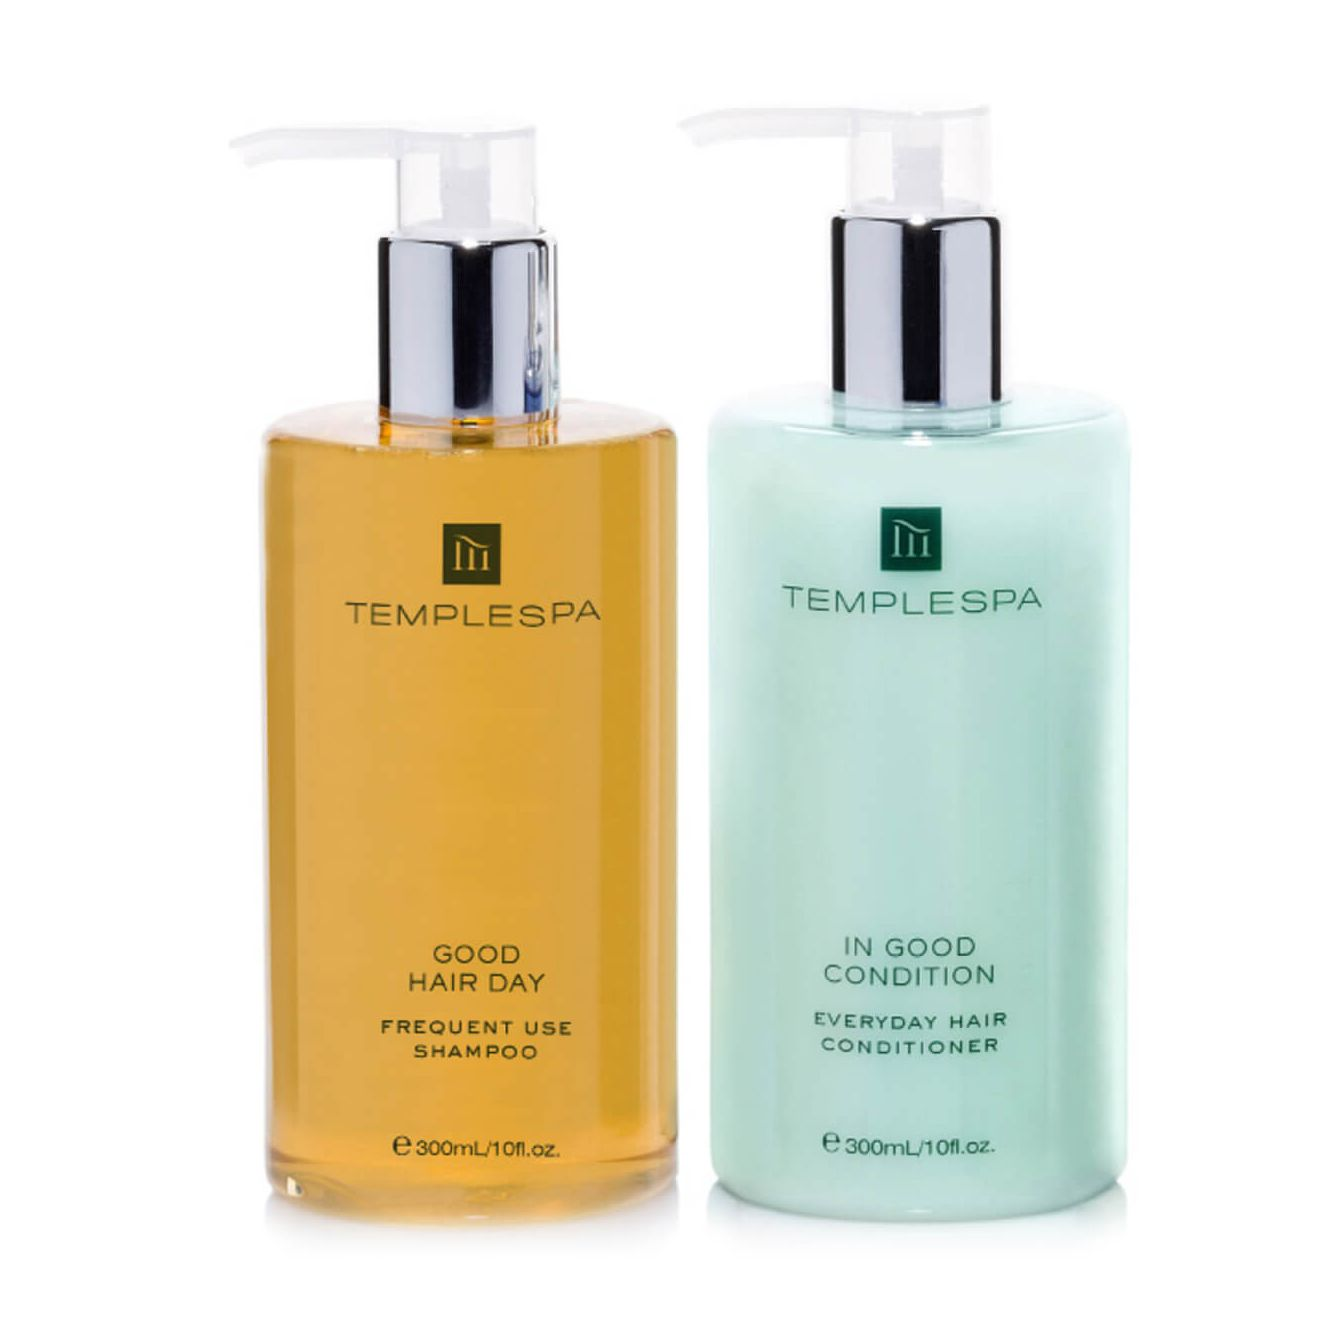 CLEAN AND NOURISH HAIR DUO